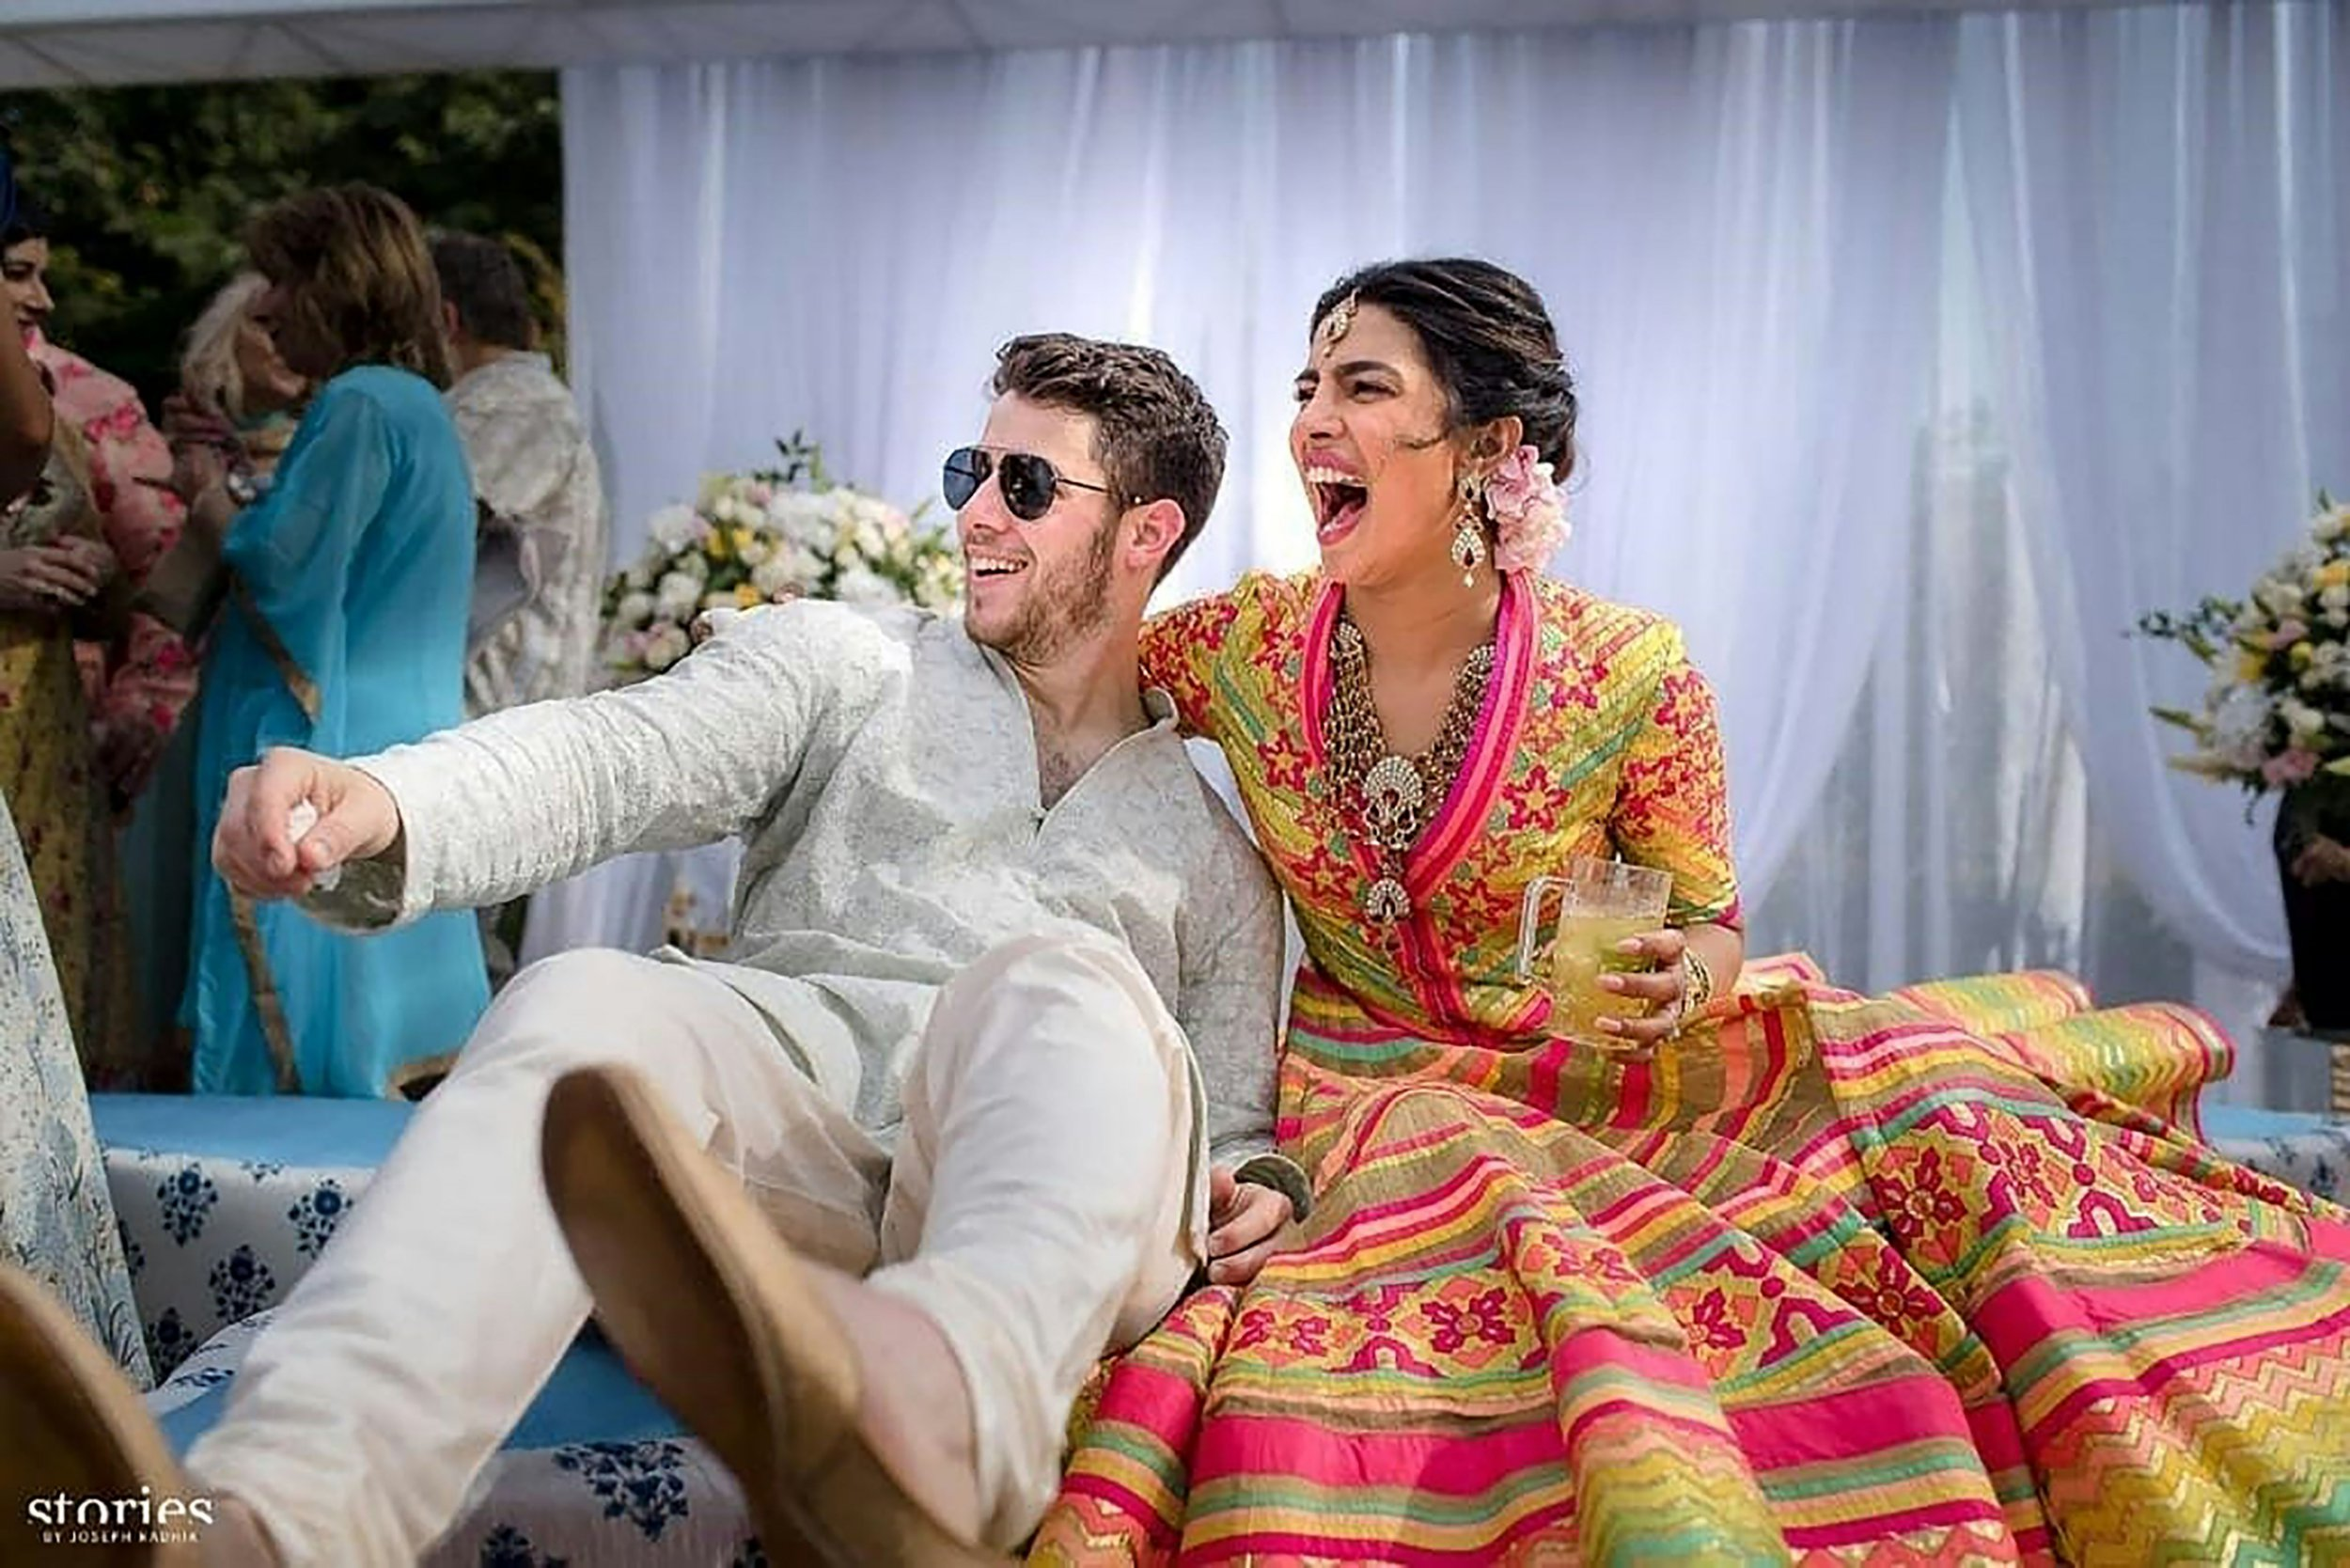 "This handout photo released by Raindrop Media on December 1, 2018, shows Bollywood actress Priyanka Chopra (R) and American singer Nick Jonas during their wedding celebration at Umaid Bhawan palace in Jodhpur. - Bollywood actress Priyanka Chopra and American singer Nick Jonas have tied the knot at a lavish ceremony in a royal Indian palace before friends and family. Fireworks lit up the sky as the celebrity couple exchanged vows on December 1 in a Christian ceremony at the opulent Umaid Bhawan palace in Jodhpur, in the western desert state of Rajasthan. (Photo by Handout / RAINDROP MEDIA / AFP) / RESTRICTED TO EDITORIAL USE - MANDATORY CREDIT ""AFP PHOTO / RAINDROP MEDIA"" - NO MARKETING NO ADVERTISING CAMPAIGNS - DISTRIBUTED AS A SERVICE TO CLIENTSHANDOUT/AFP/Getty Images"